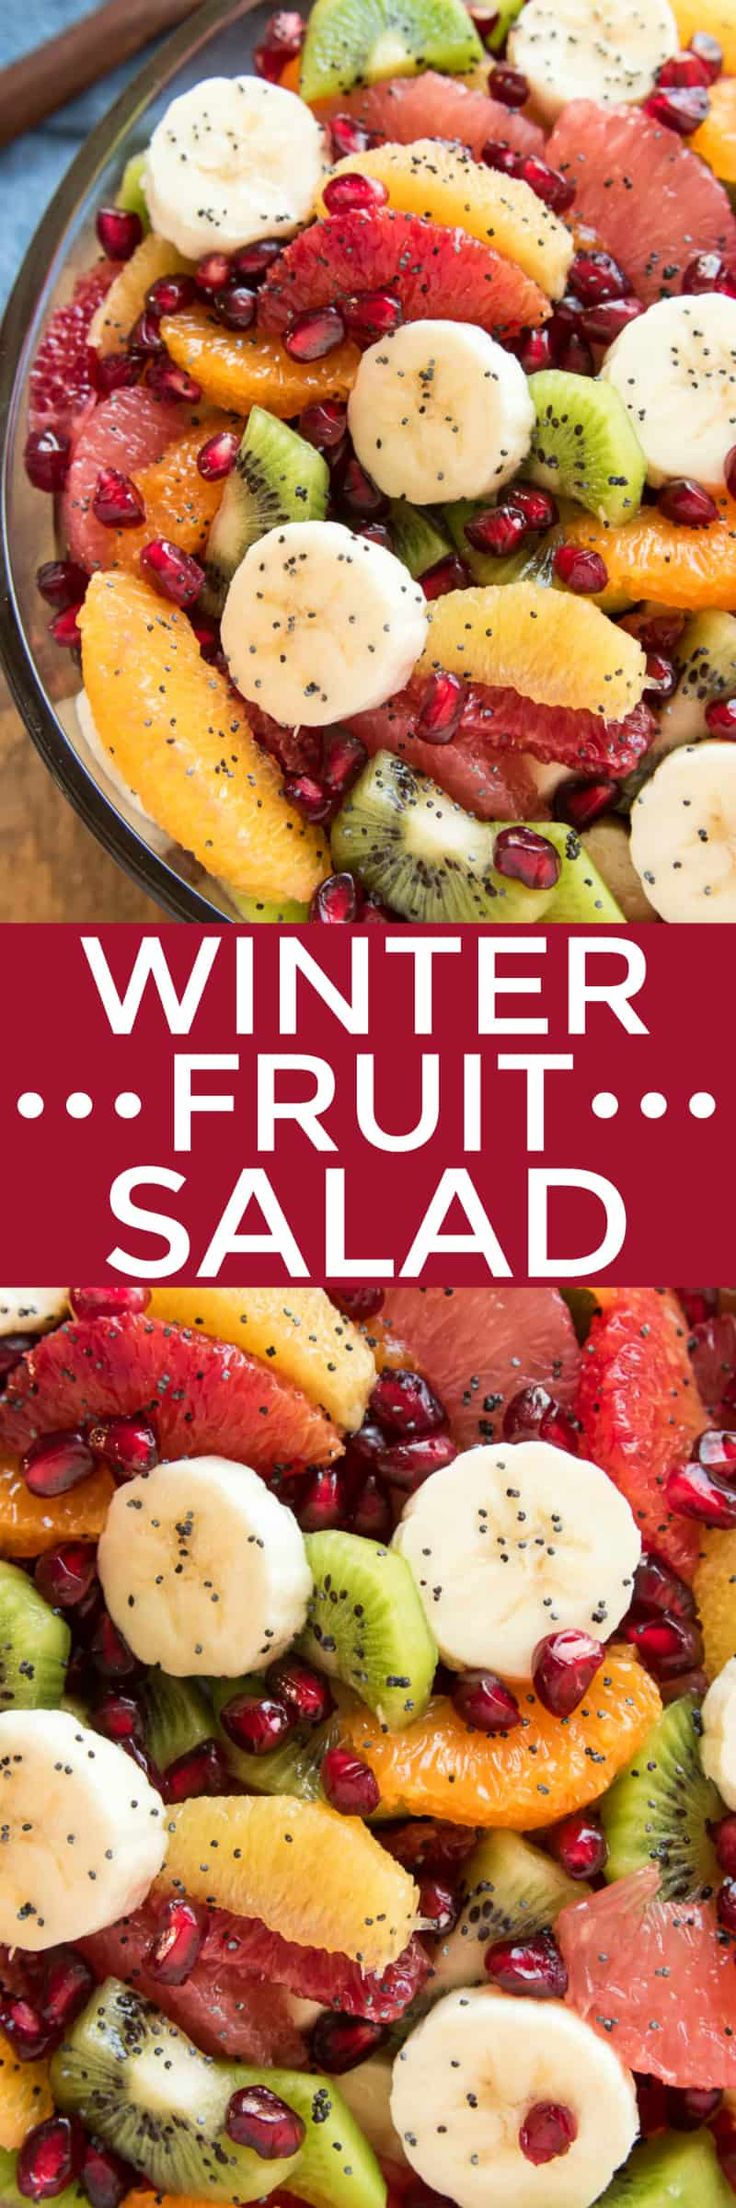 Take advantage of citrus season with this delicious Winter Fruit Salad! Loaded with all your favorite winter citrus fruits, plus bananas, kiwi, and pomegranate seeds, this salad is bright and sweet and guaranteed to help you beat the winter blues. And when you toss it in a sweet orange poppy seed simple syrup, the end result is a fruit salad you want to eat again and again, all winter long. Perfect for breakfast, lunch, or any meal in between, this salad is as healthy as it is…